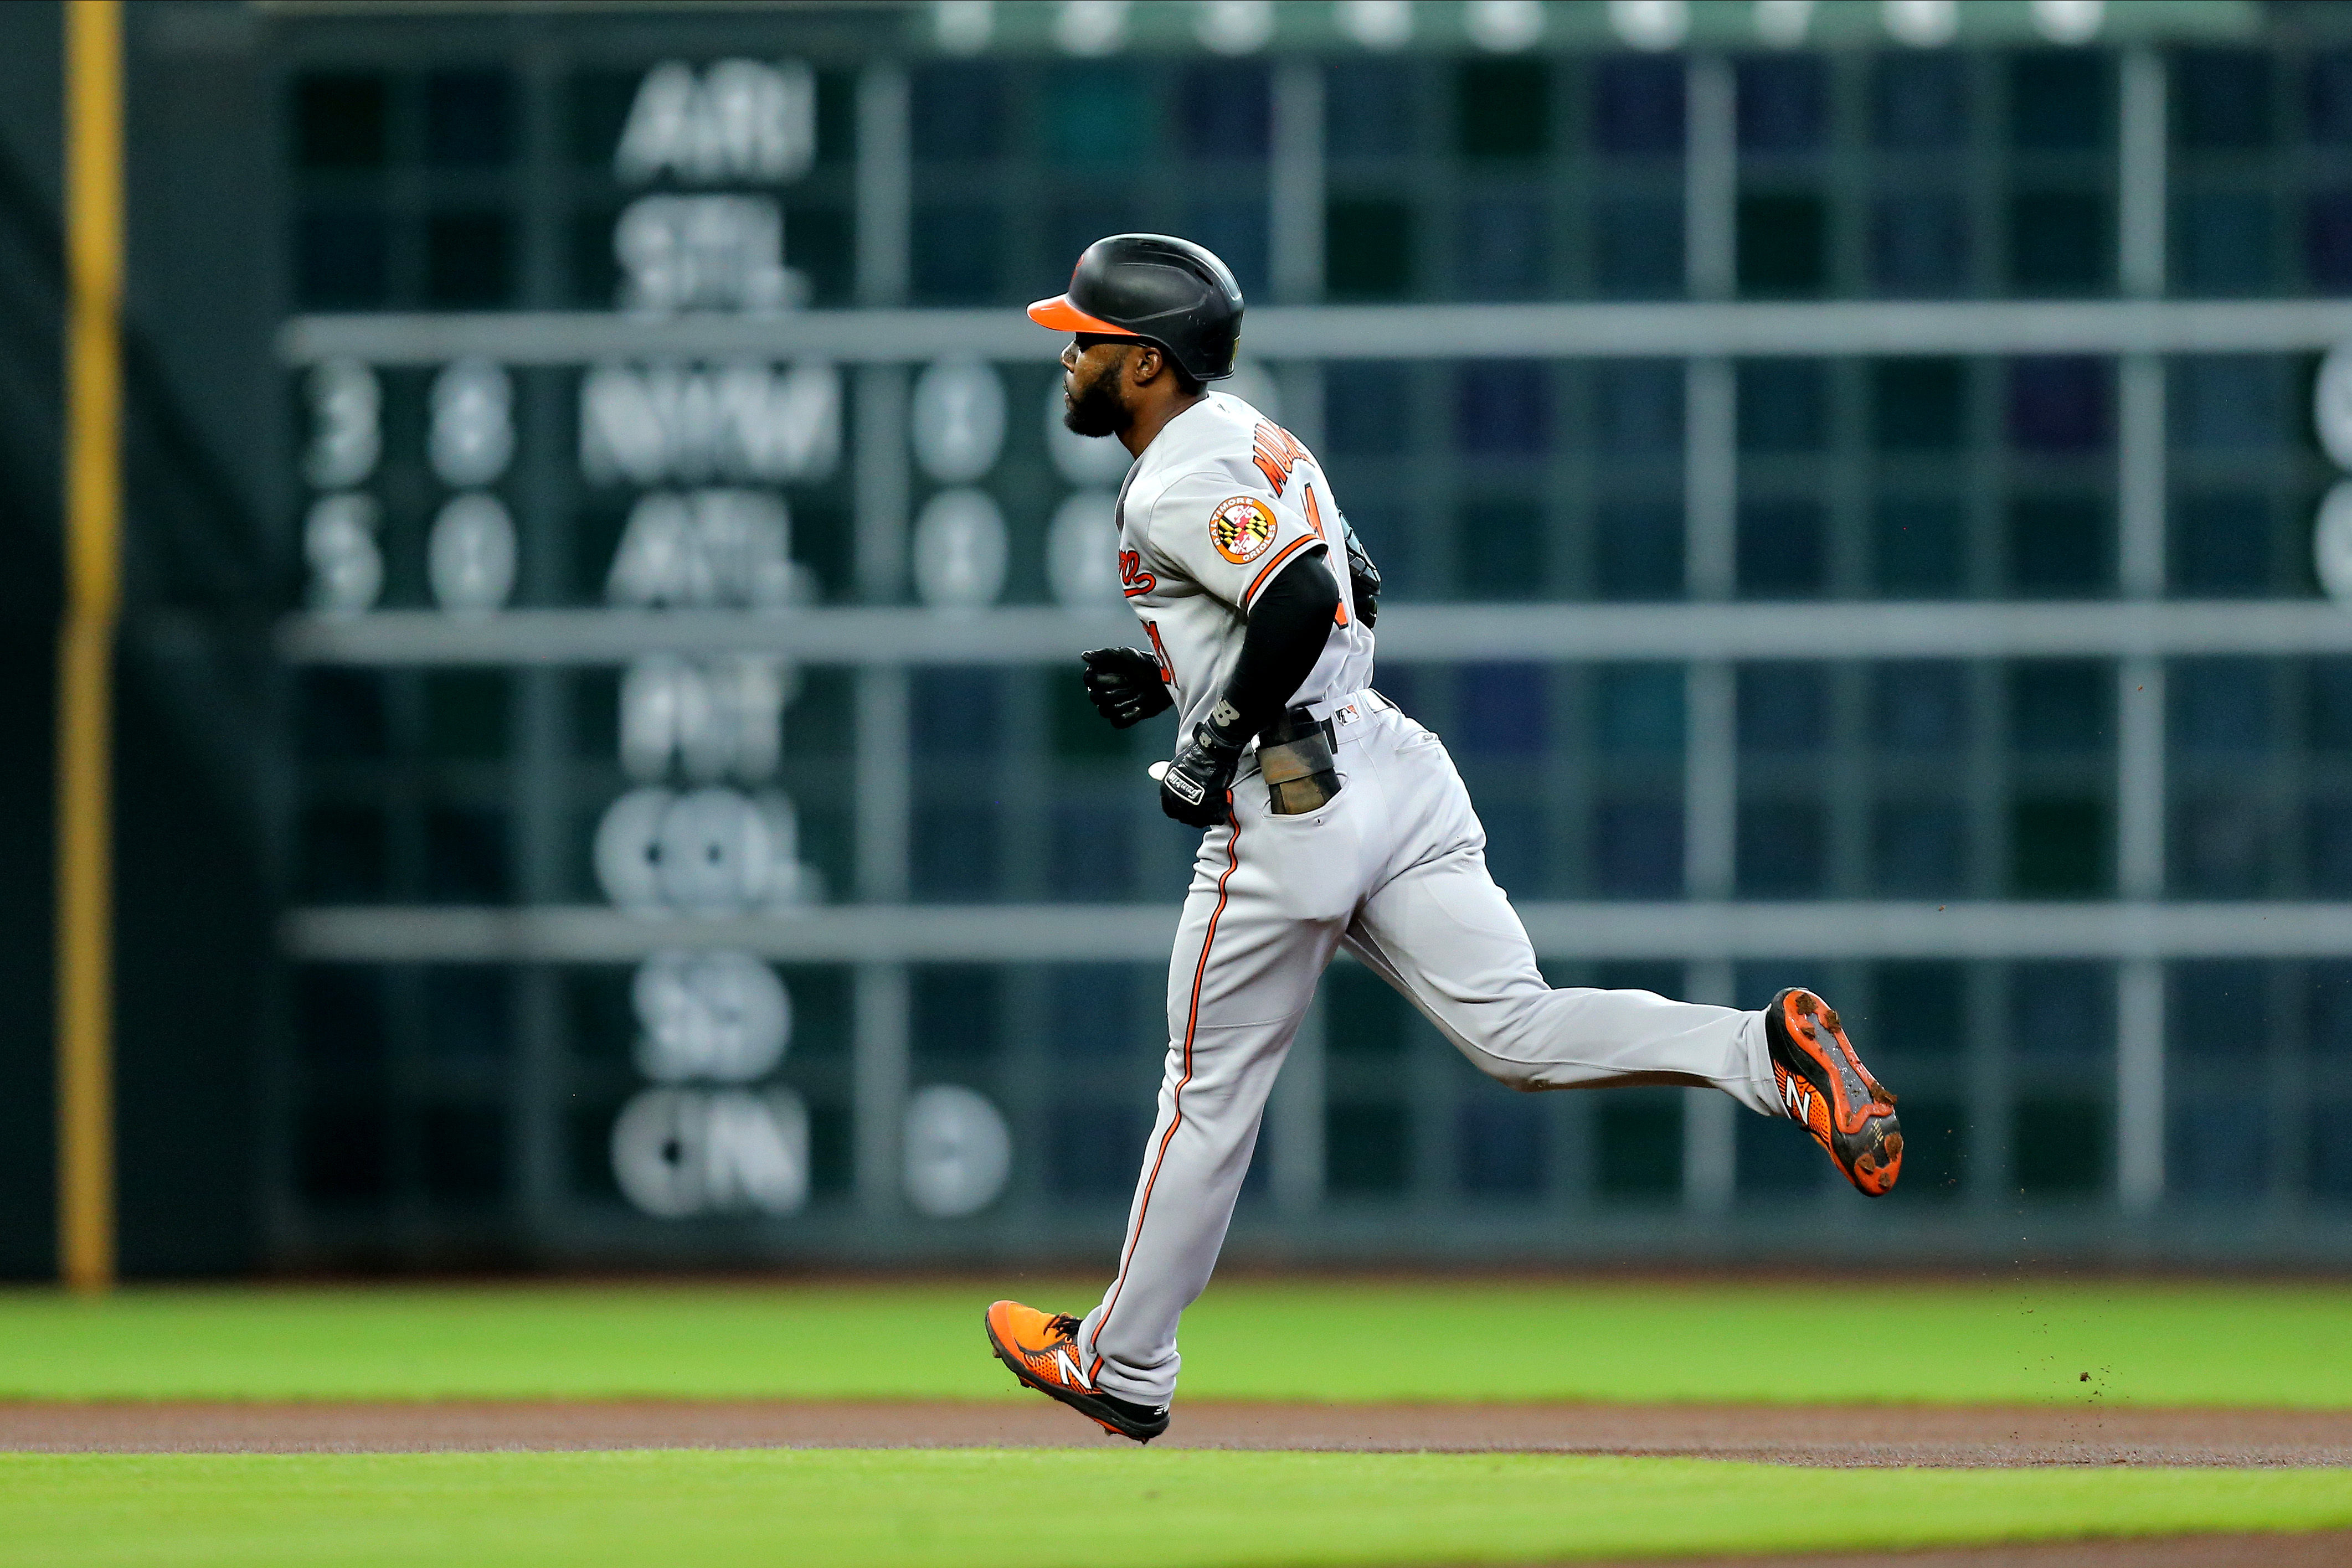 Jun 29, 2021; Houston, Texas, USA; Baltimore Orioles center fielder Cedric Mullins (31) rounds the bases after hitting a home run against the Houston Astros during the first inning at Minute Maid Park. Mandatory Credit: Erik Williams-USA TODAY Sports